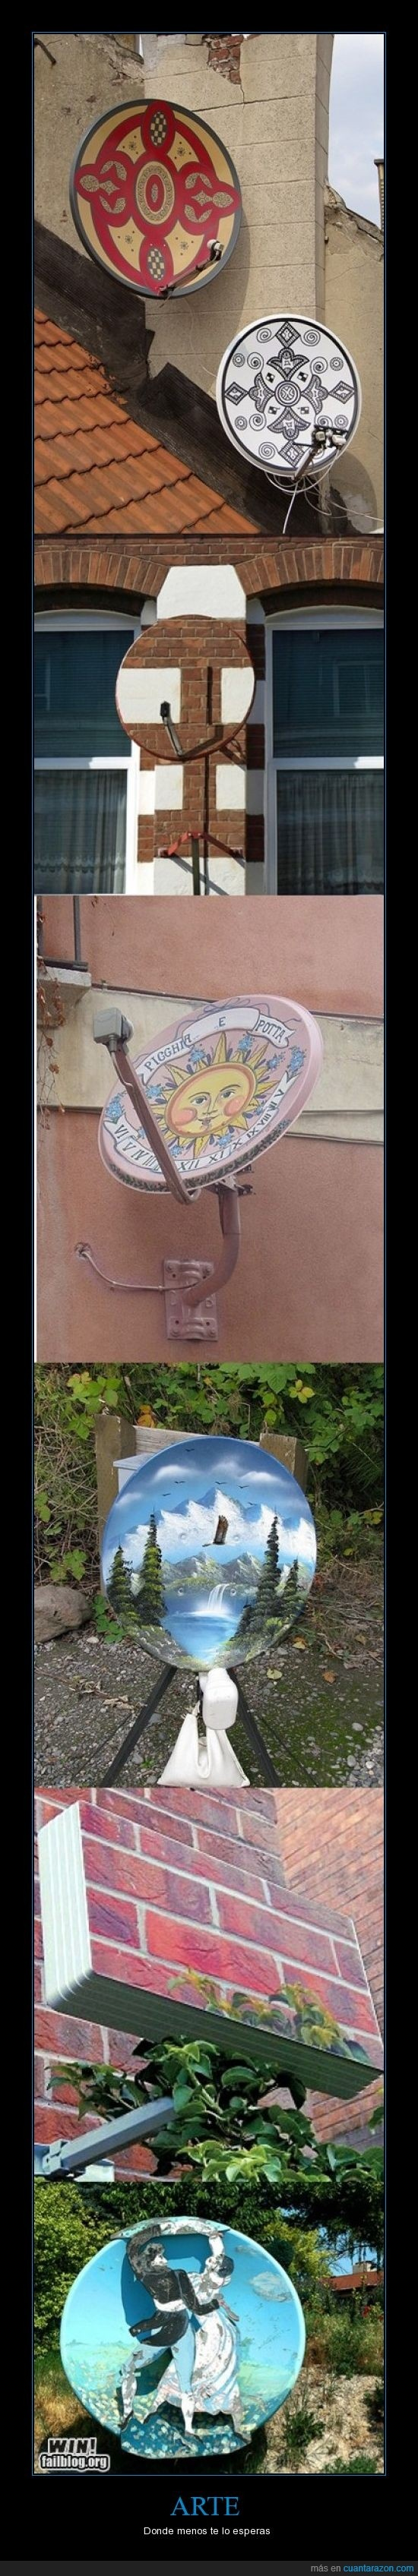 11 best sat images on pinterest satellite dish dishes and